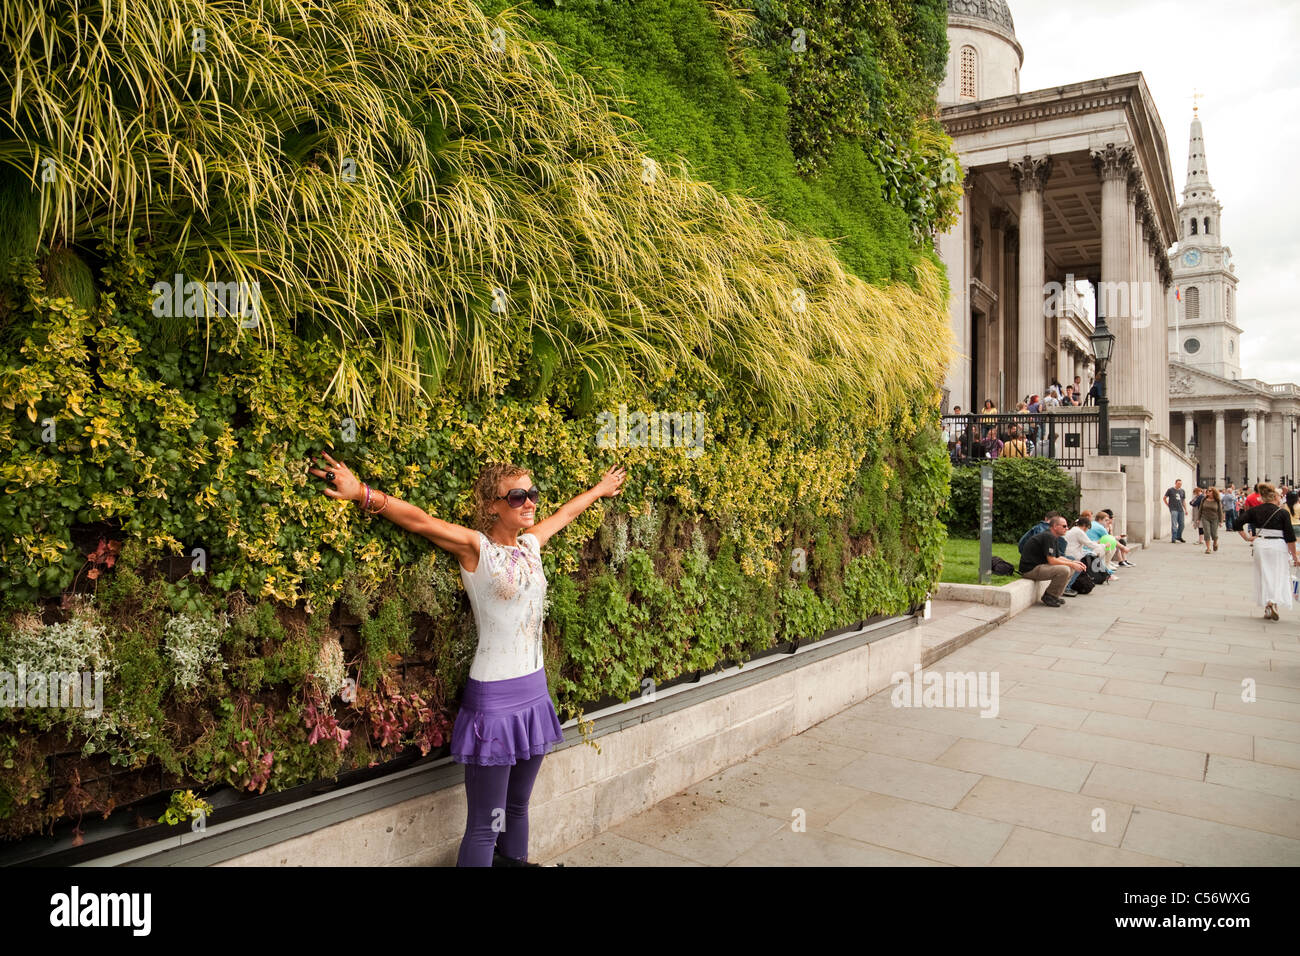 A tourist being photographed in front of  'A Living Masterpiece' - Trafalgar Square London UK - Stock Image